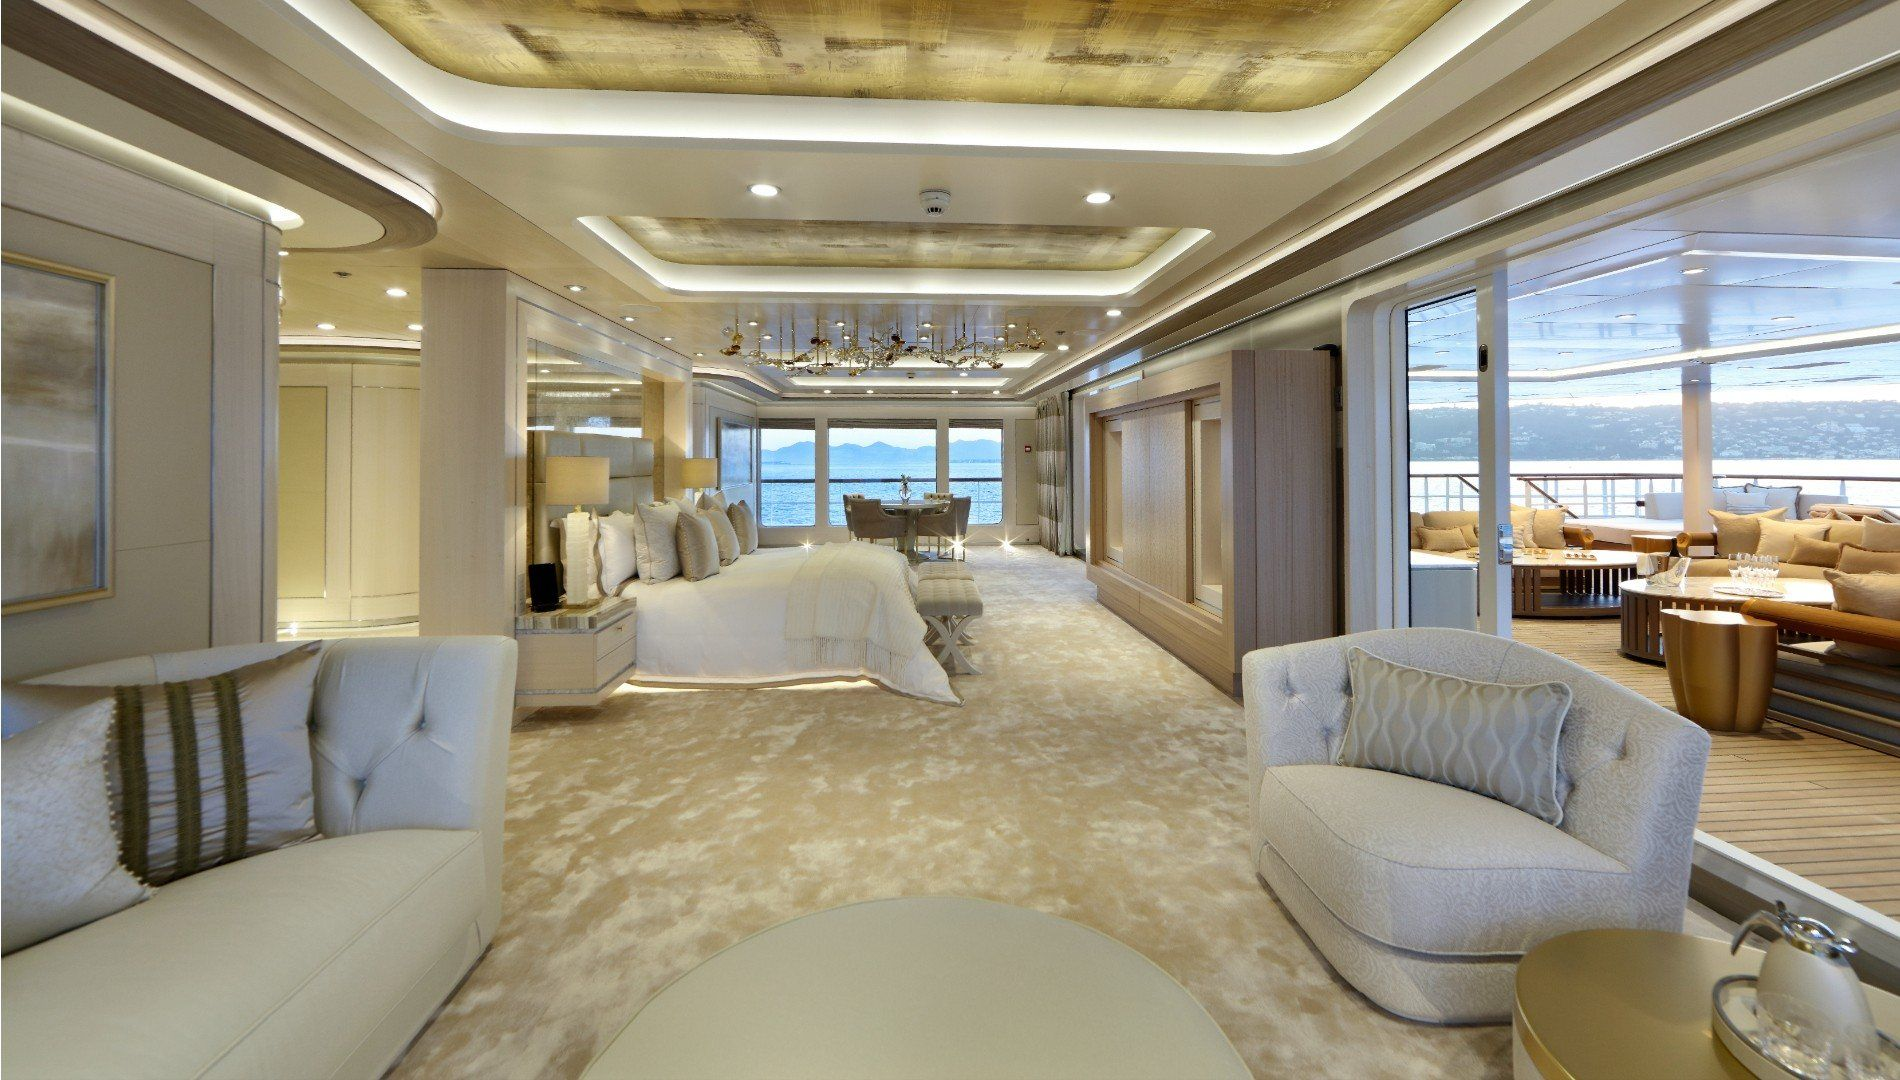 Pin By Ant Germain On Ulysses Interior Motor Yachts